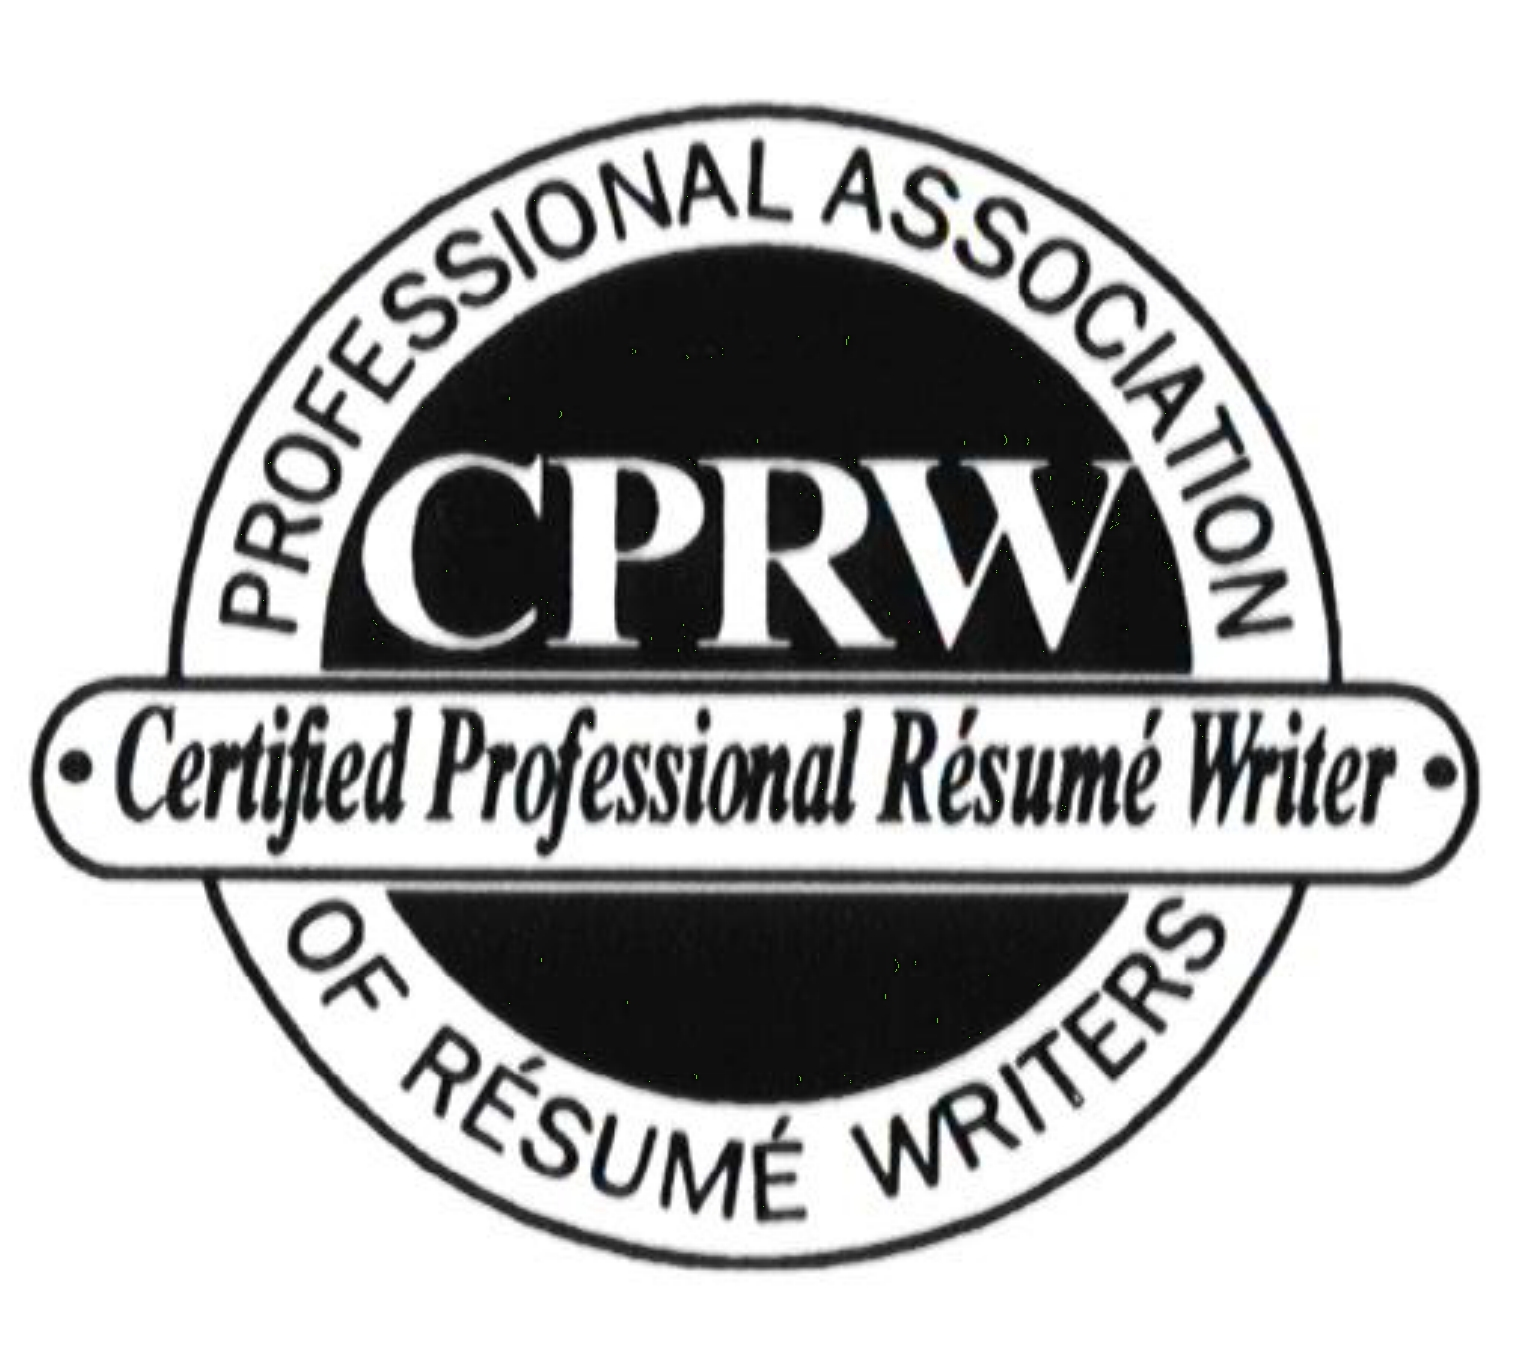 Certified Resume Writer resume writer certification certified master resume writer amp example resume and cover letter ipnodns ru where to include cpr on resume resume Cprw Certified Professional Resume Writer